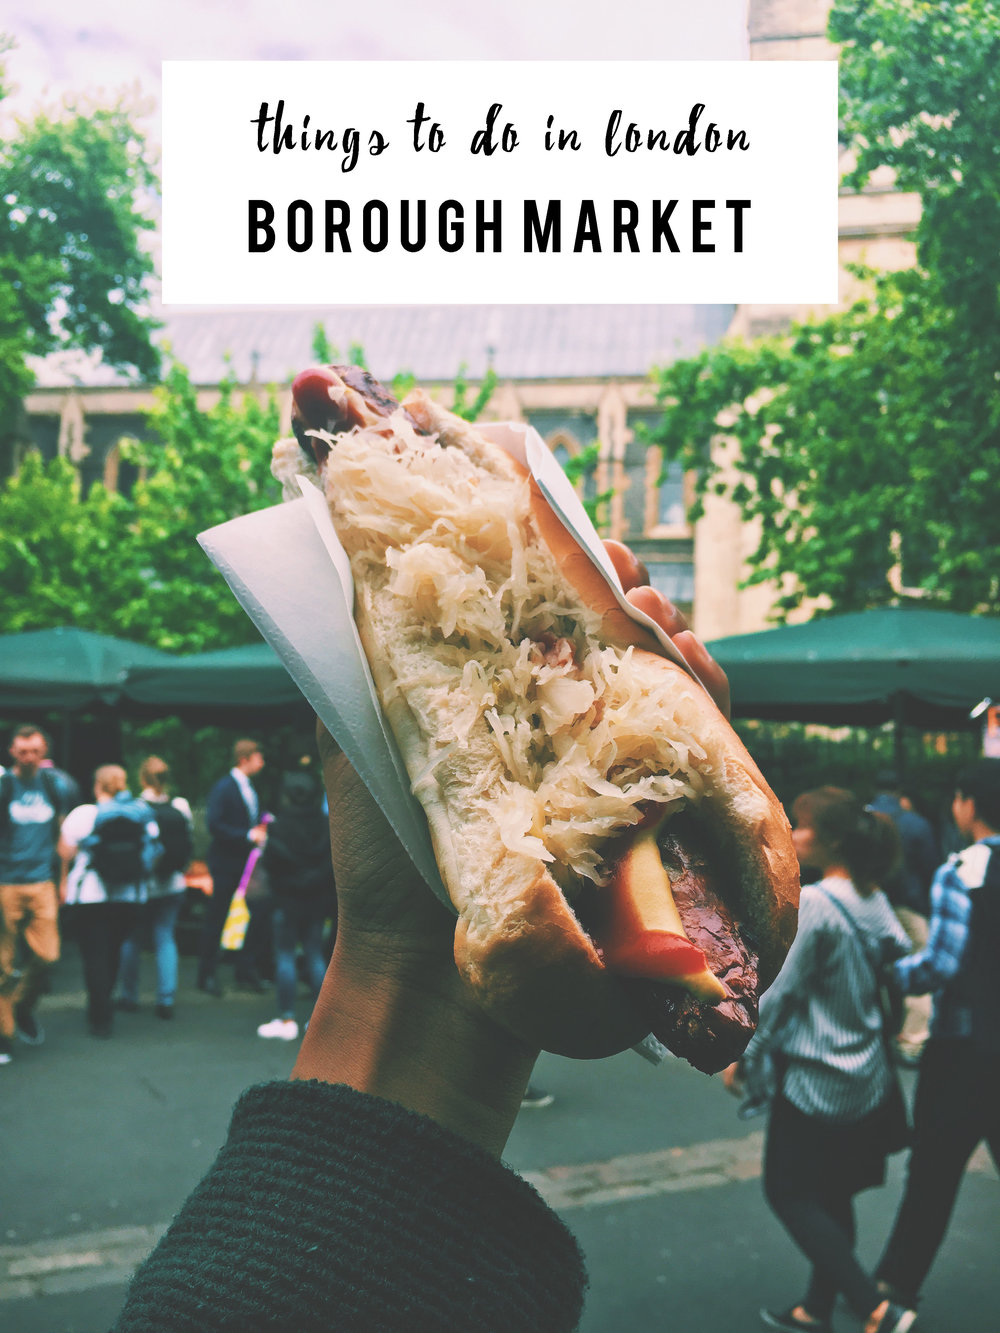 boroughmarket.jpg